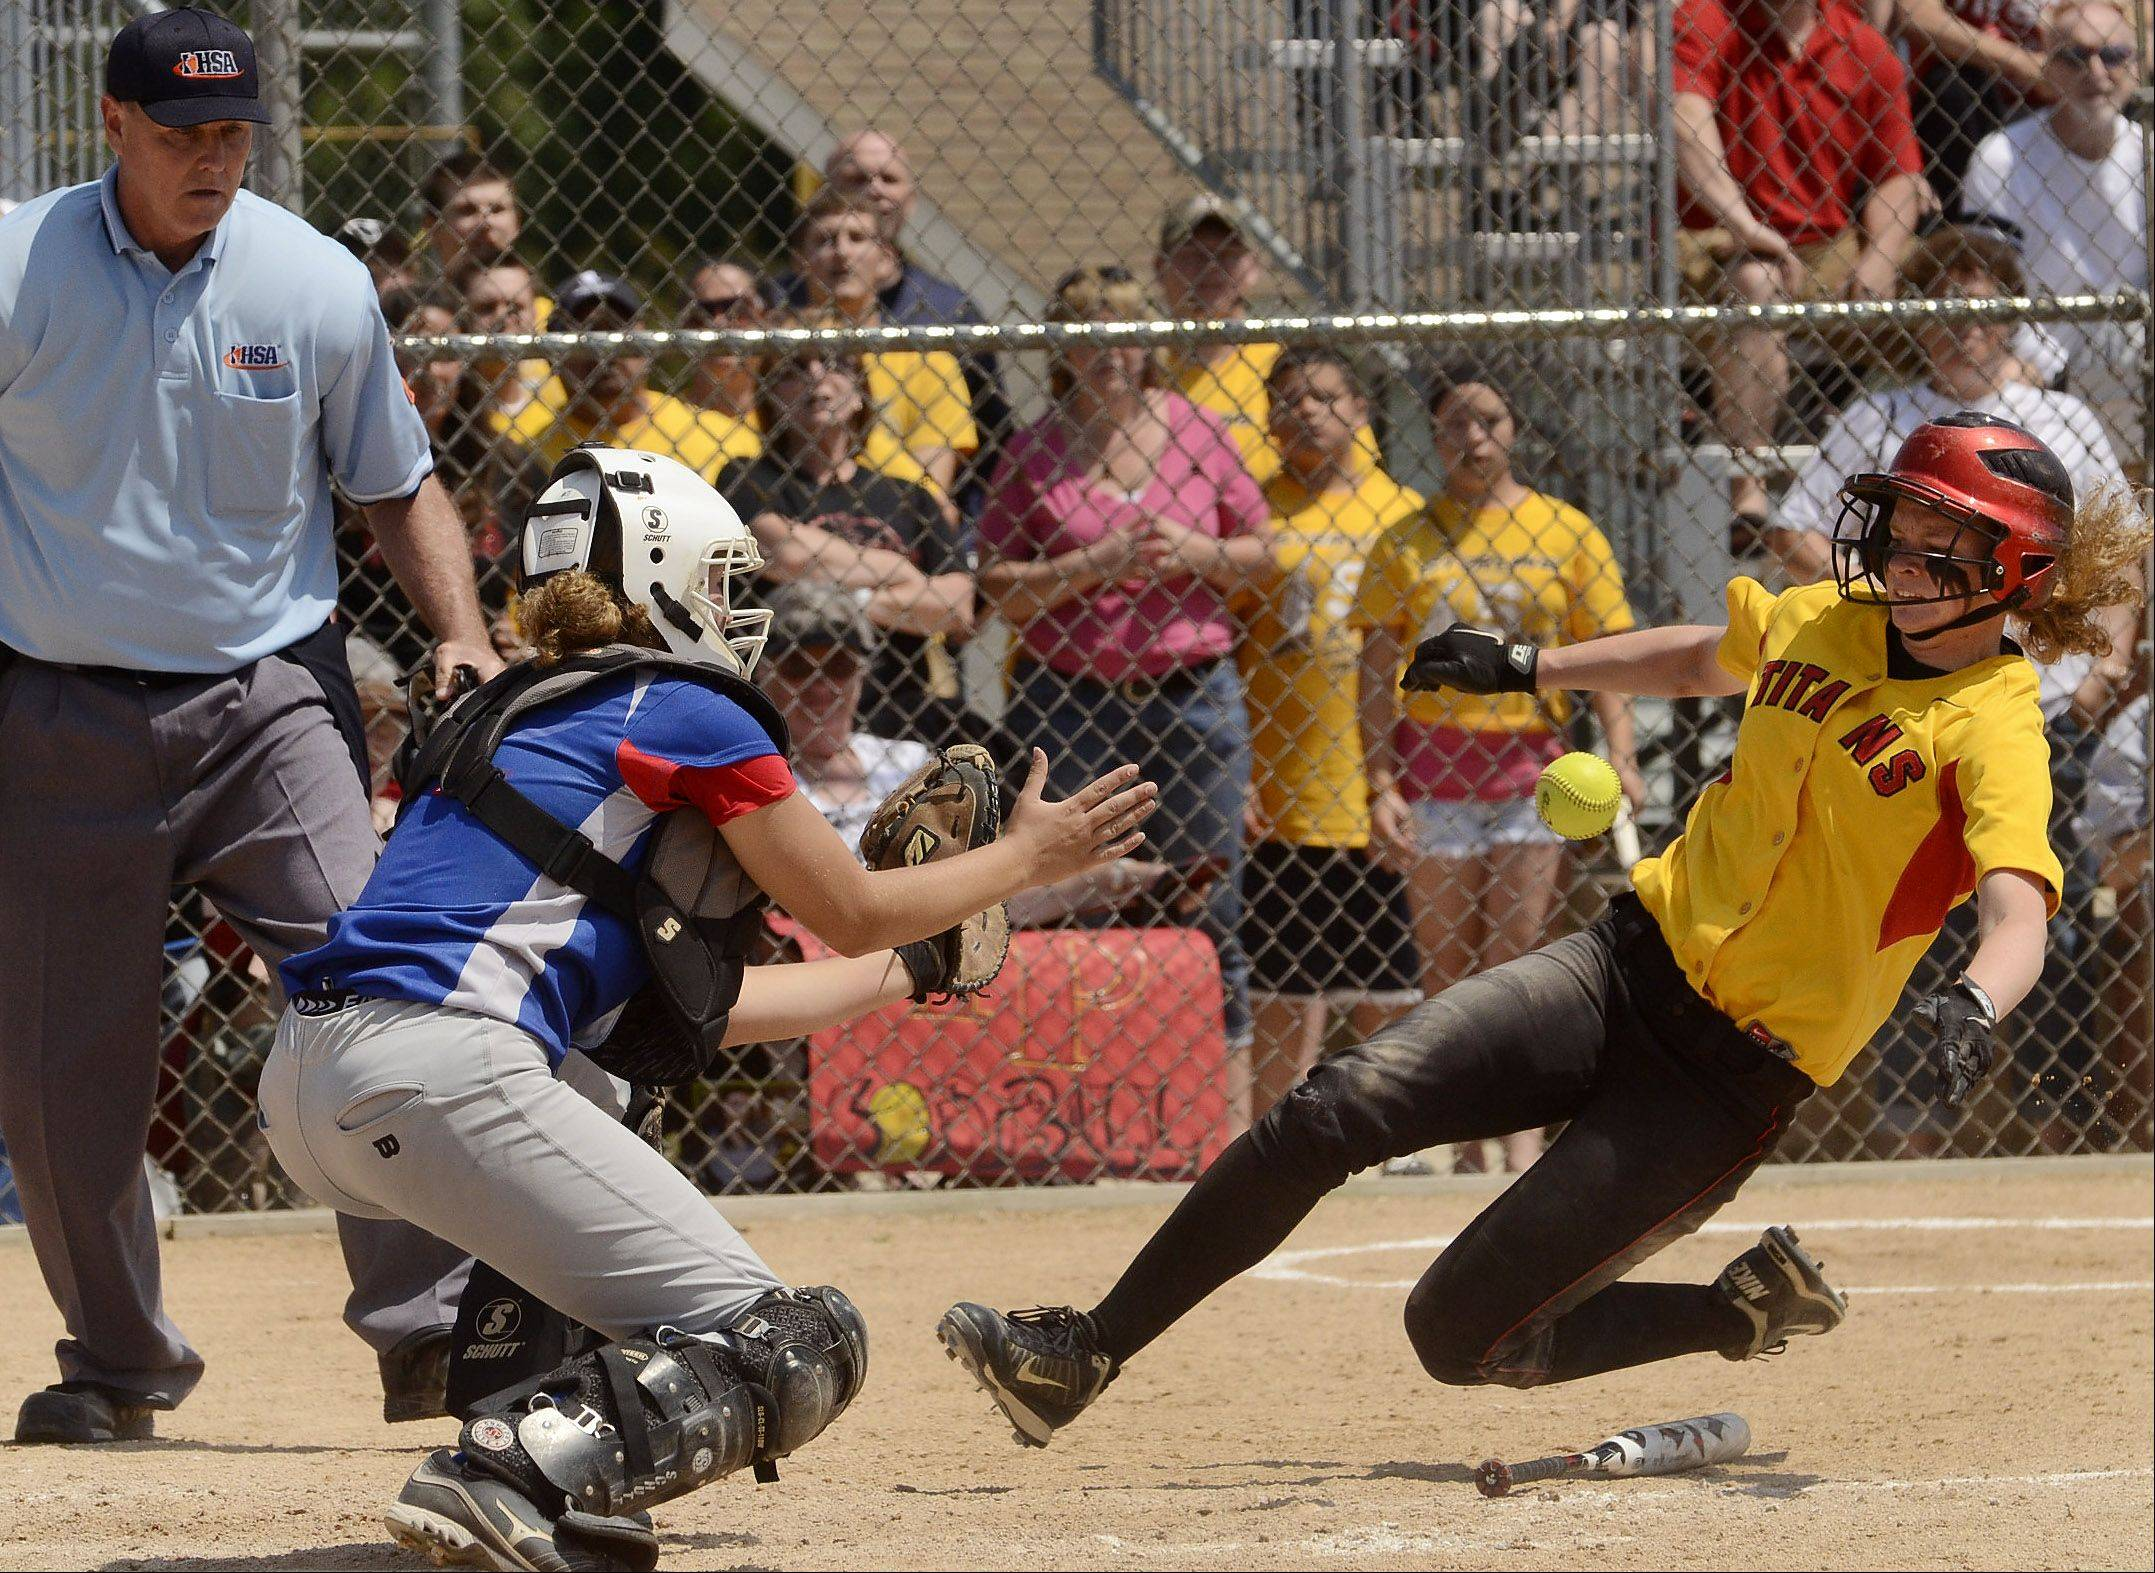 Glenbard South's catcher Jane Trzaska tags out Tinley Park's Samantha Alberto in the 6th inning of the Class 3A state semifinal between Glenbard South and Tinley Park.